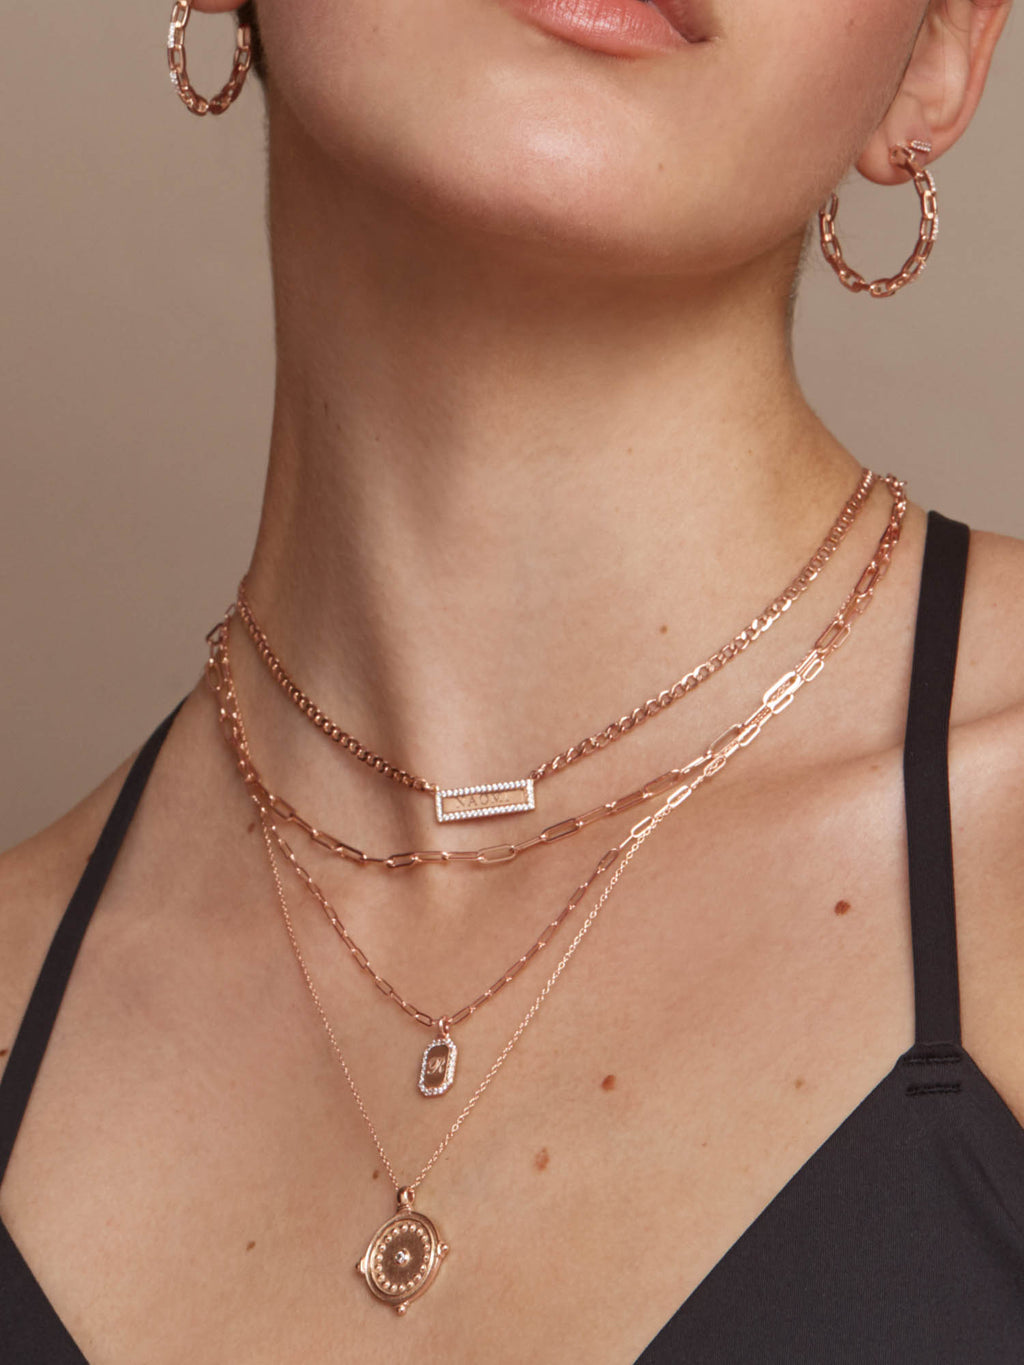 Sparkle Paperclip Tag Necklace - Rose Gold